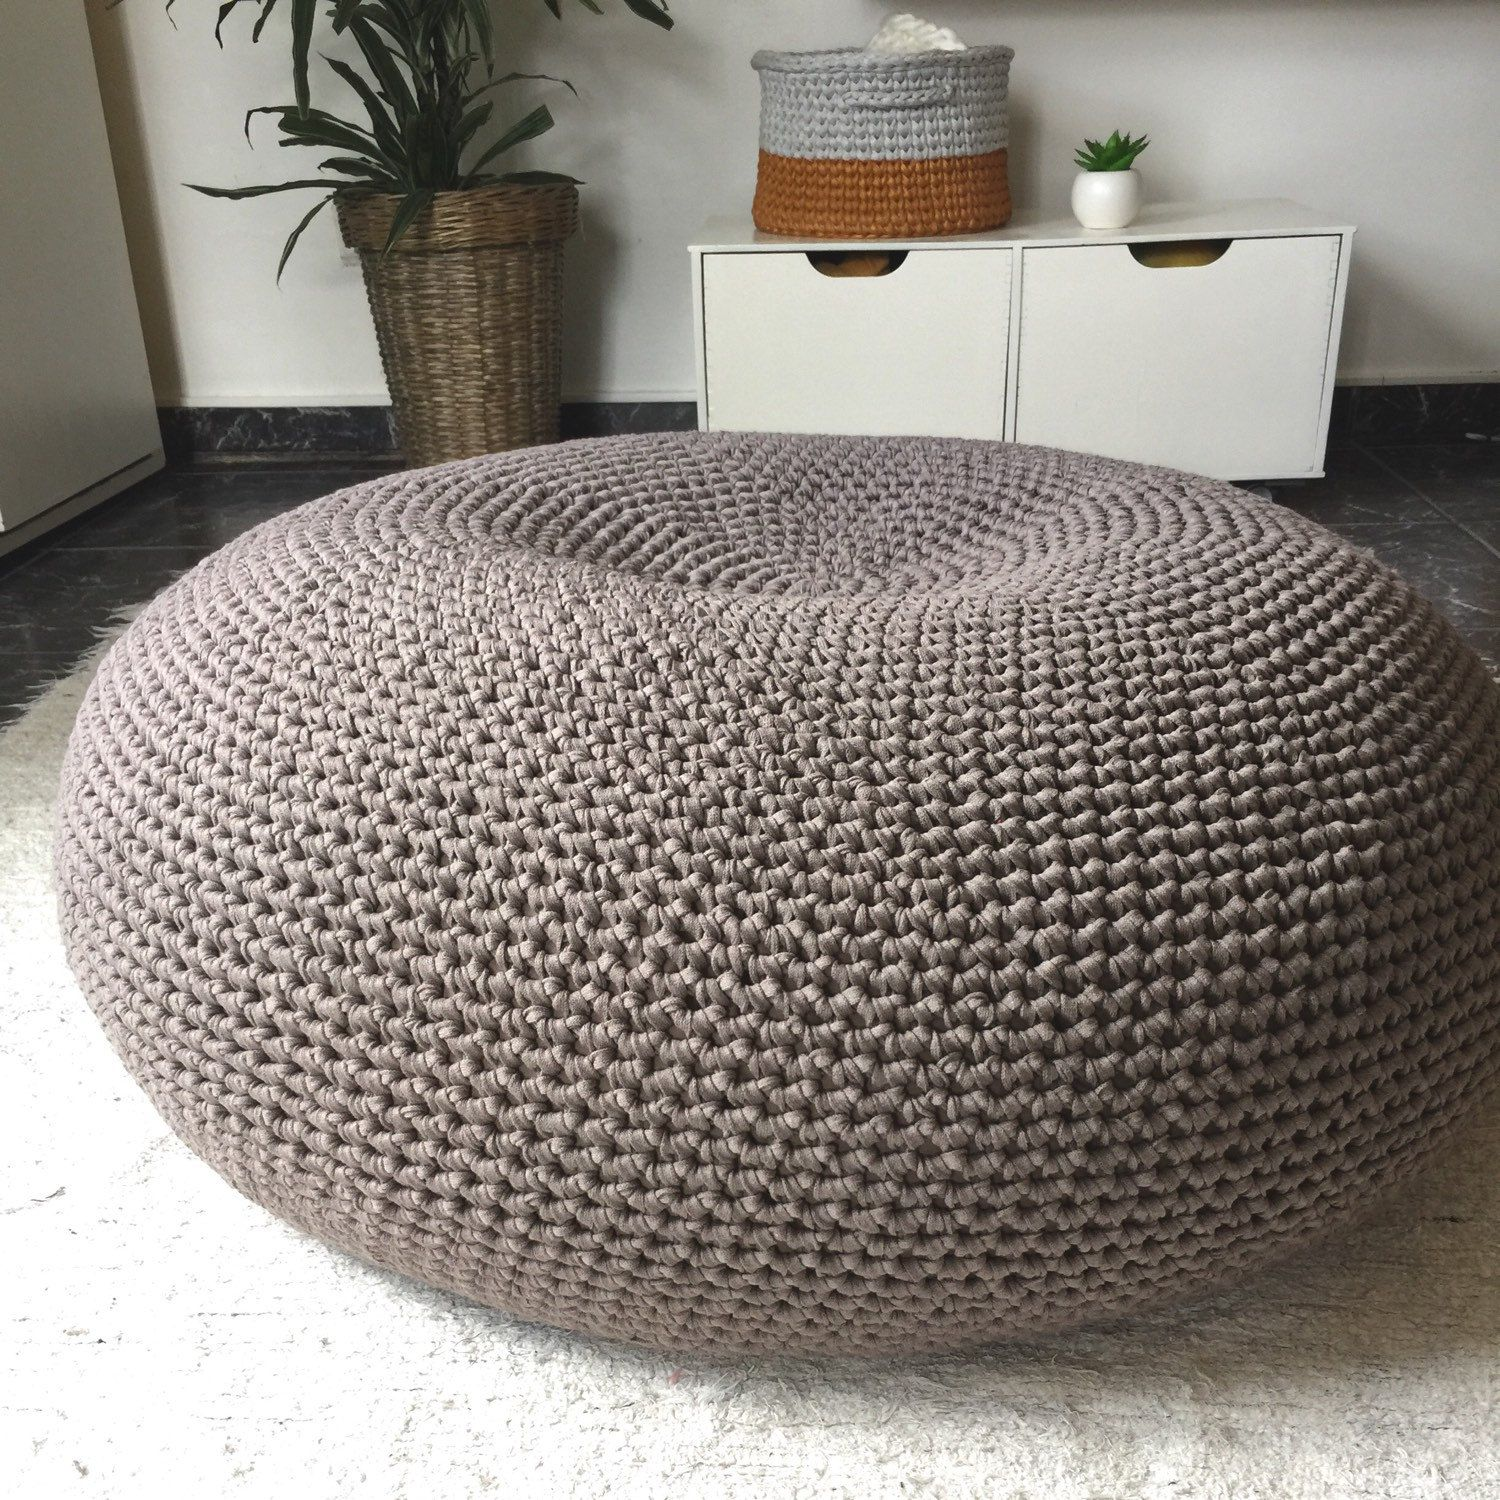 Giant Pillow Chair Giant Pouf Ottoman Extra Large Floor Cushion Bean Bag